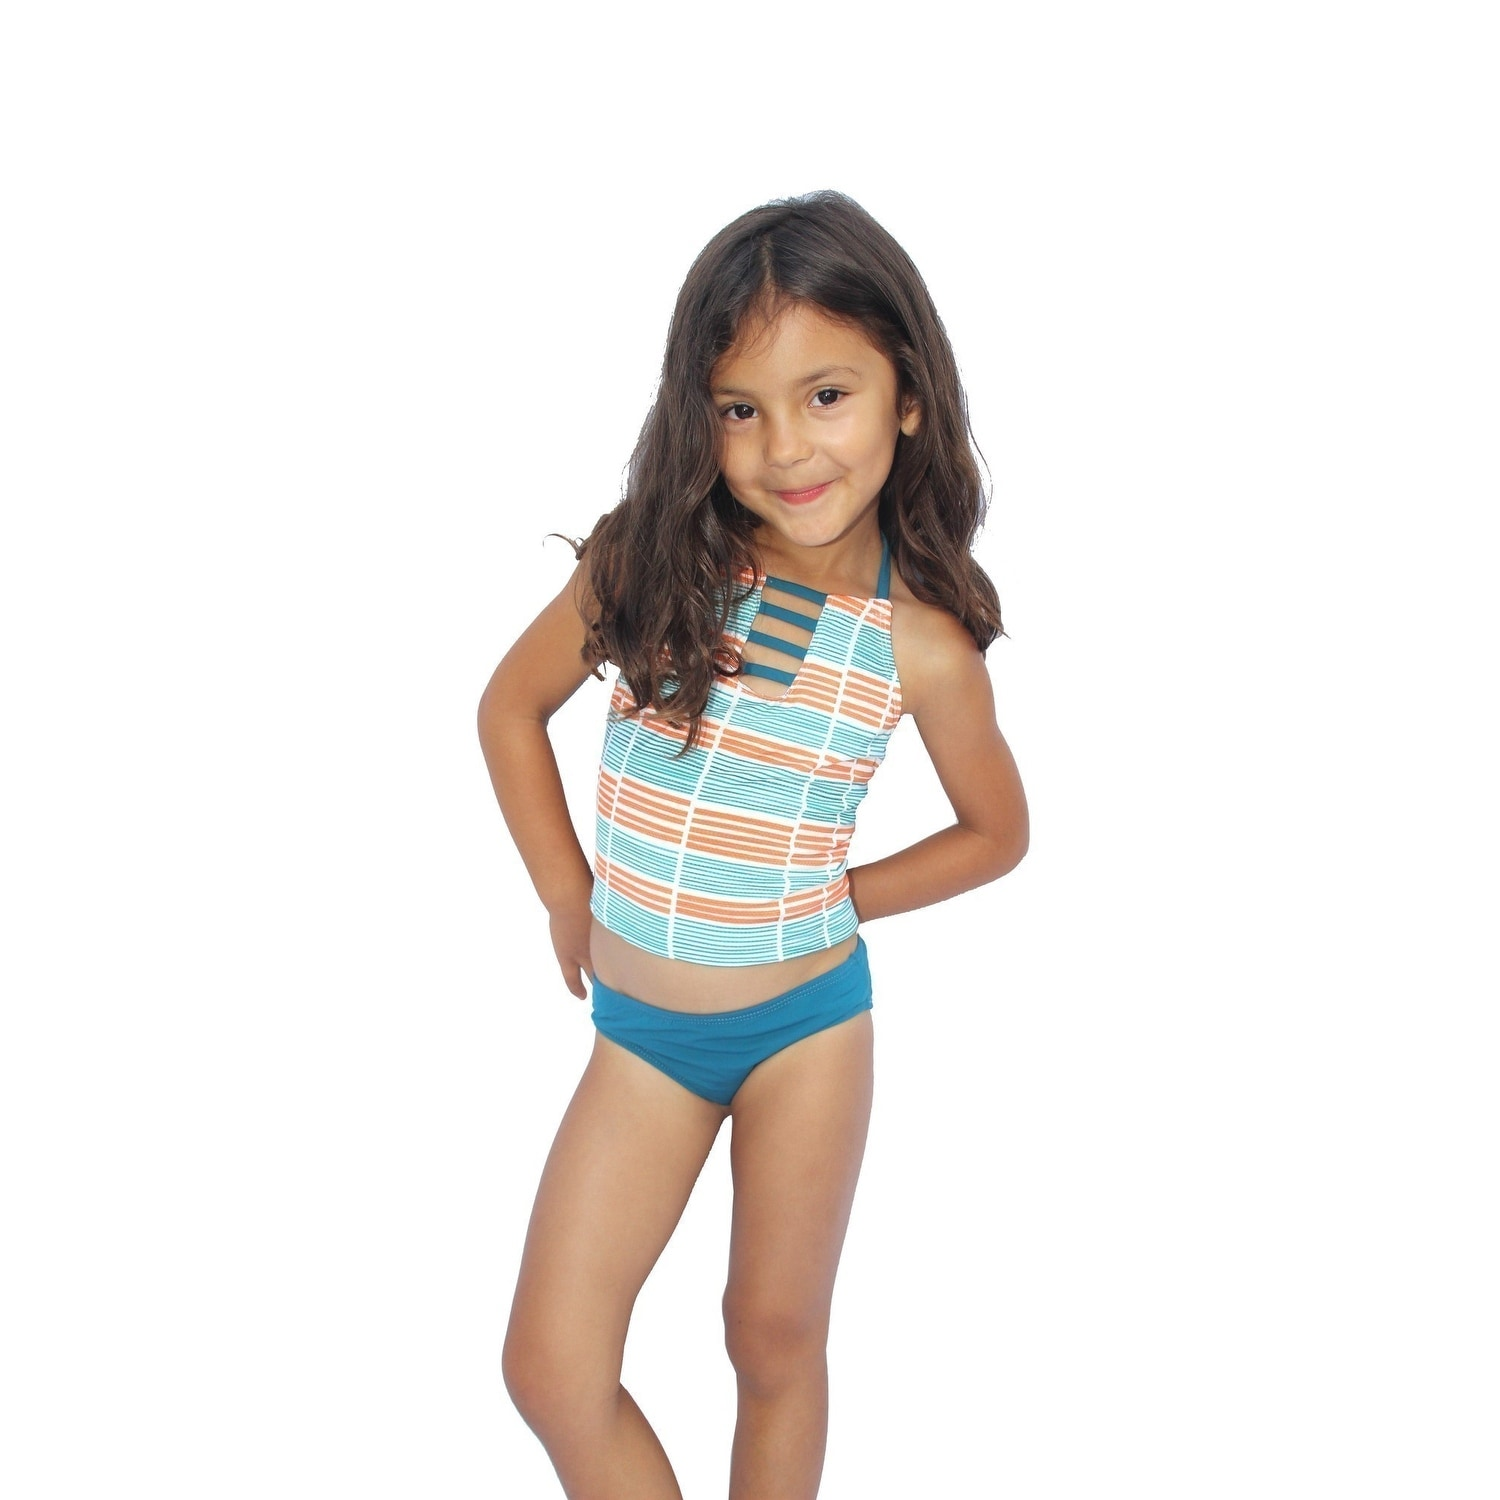 6d630db2d Buy Girls' Swimwear Online at Overstock   Our Best Girls' Clothing Deals